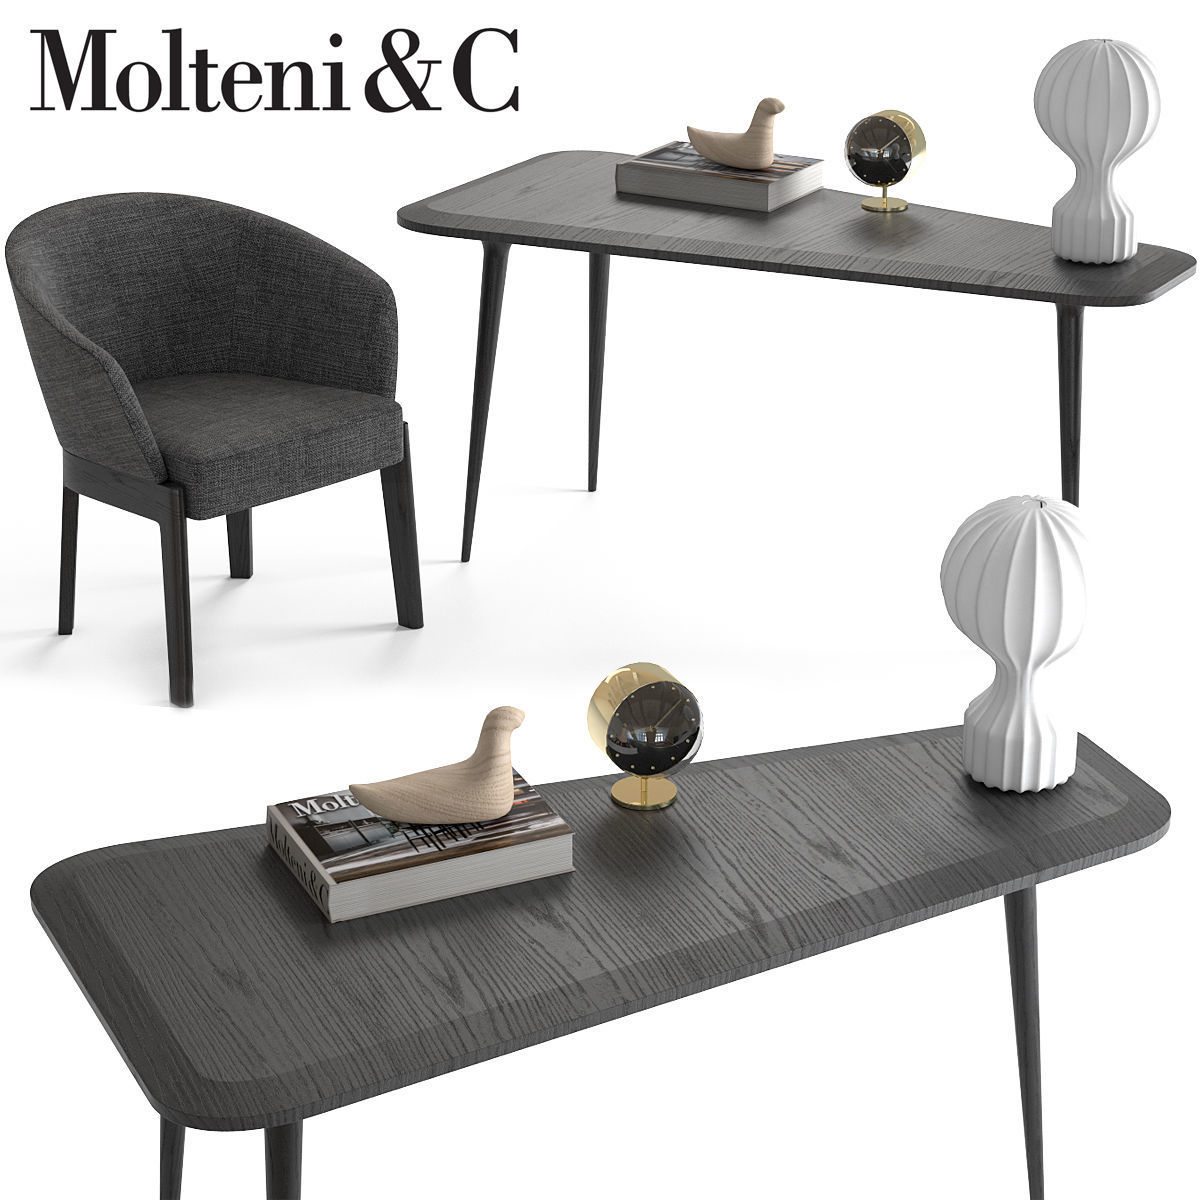 Molteni and c chelsea chair and belsize table 3d molteni and c chelsea chair and belsize table 3d model max obj fbx mtl 1 geotapseo Image collections